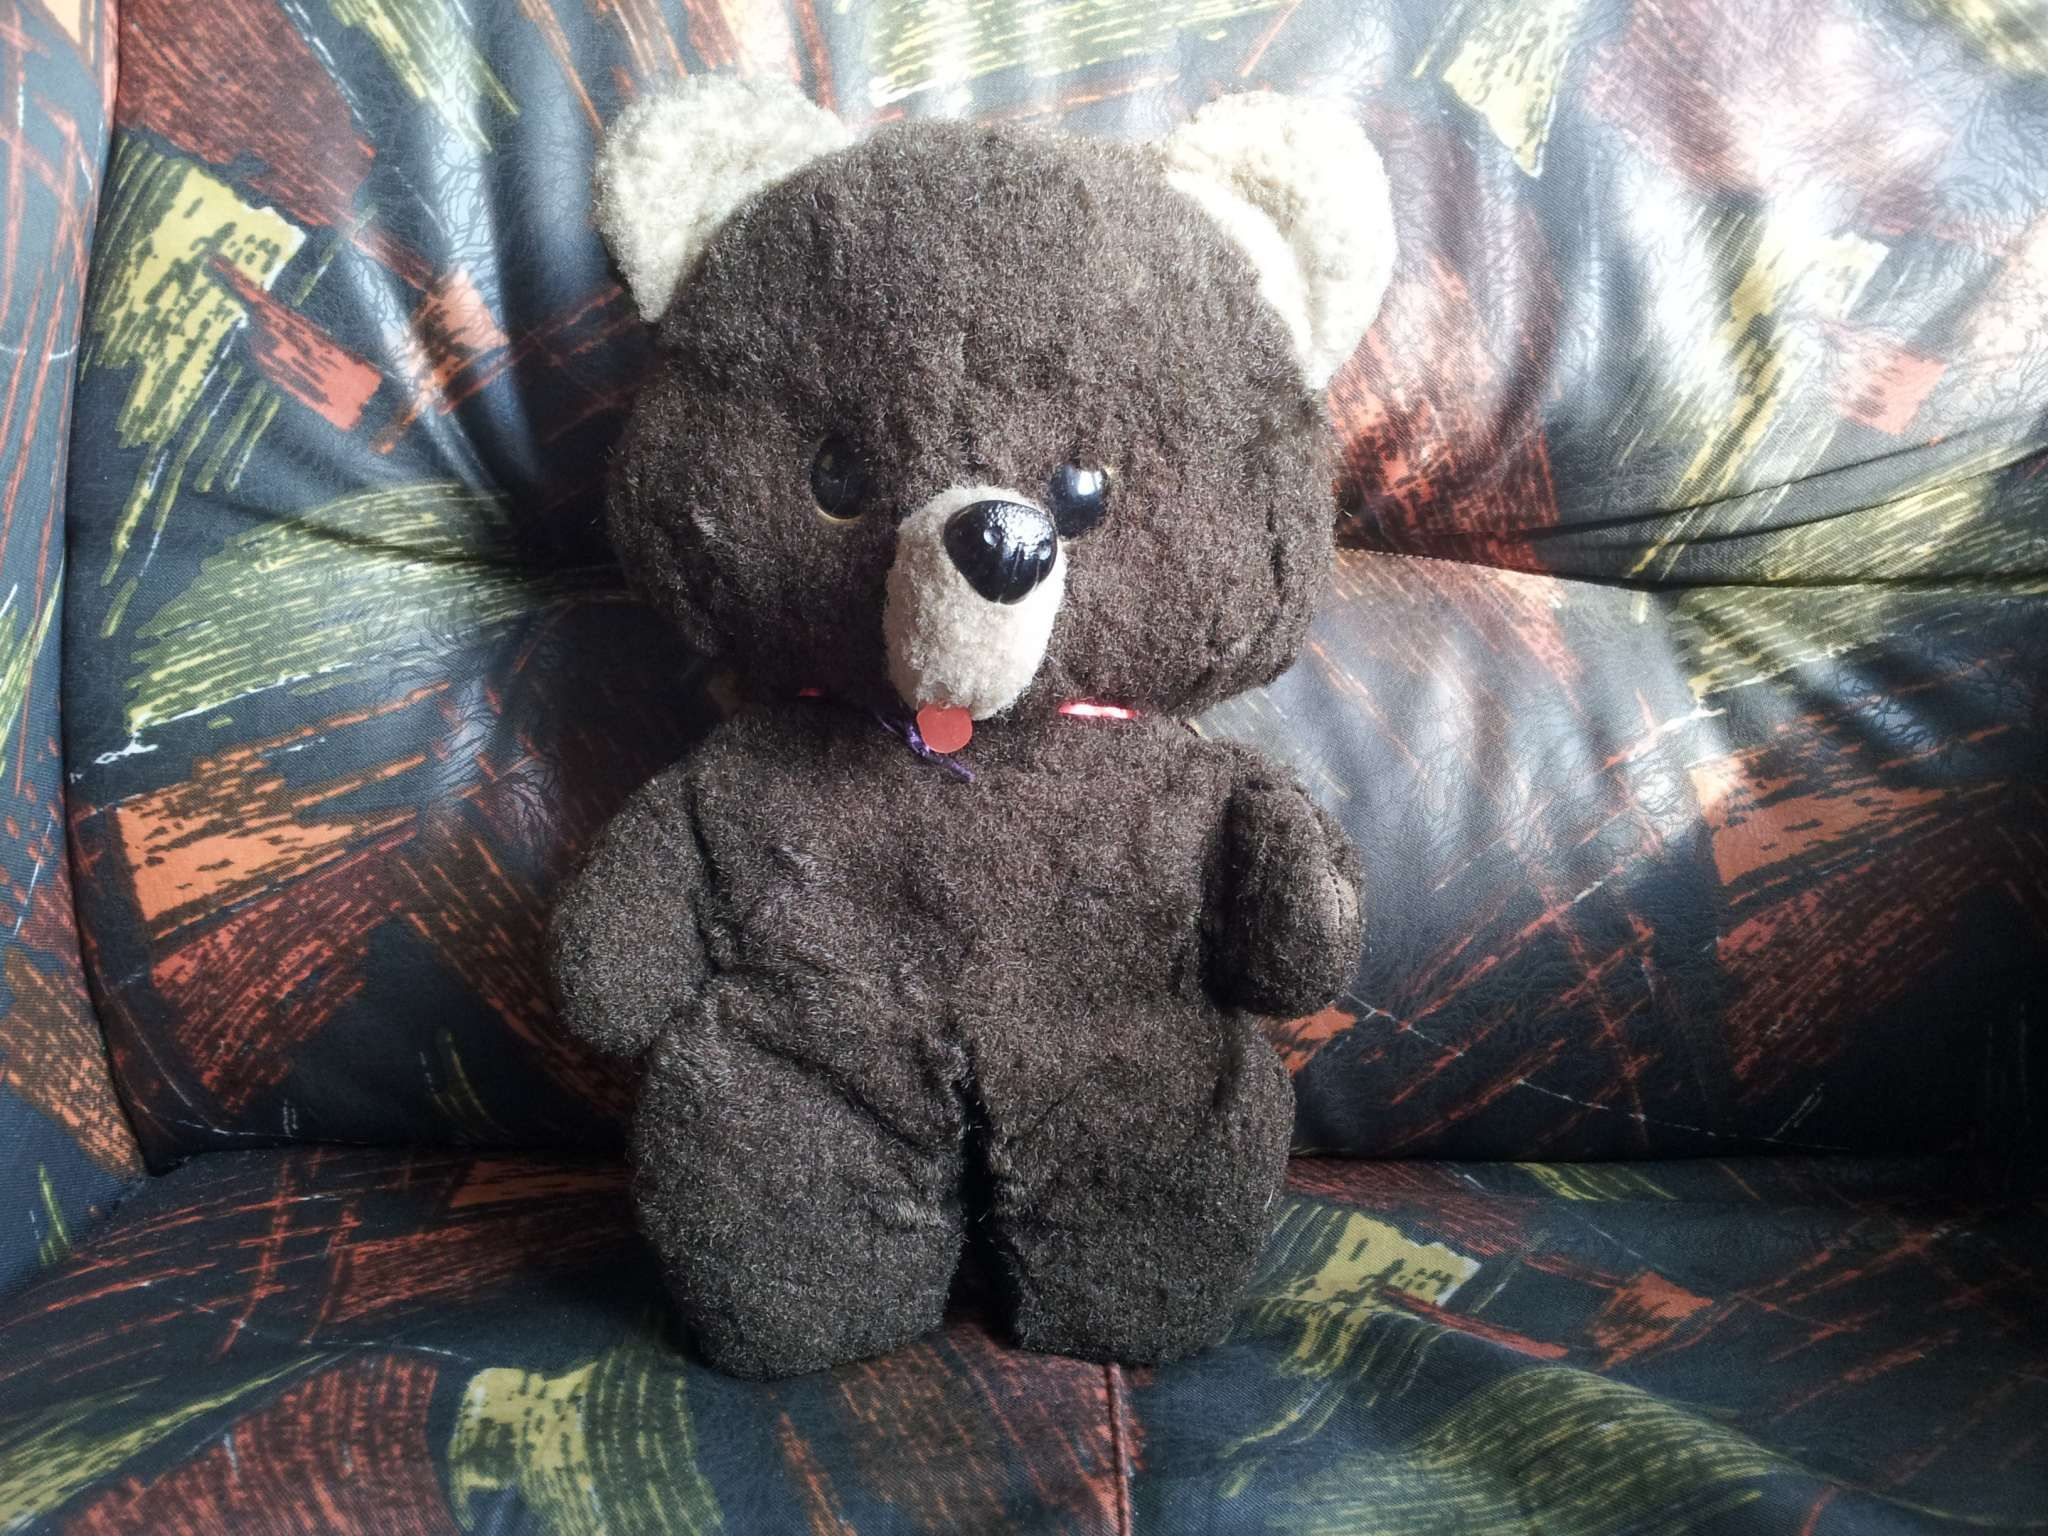 How To Clean A Very Old Stuffed Animal Stuffedparty Com The Community For Stuffed Toys Clean Stuffed Animals Sewing Stuffed Animals Talking Teddy Bear